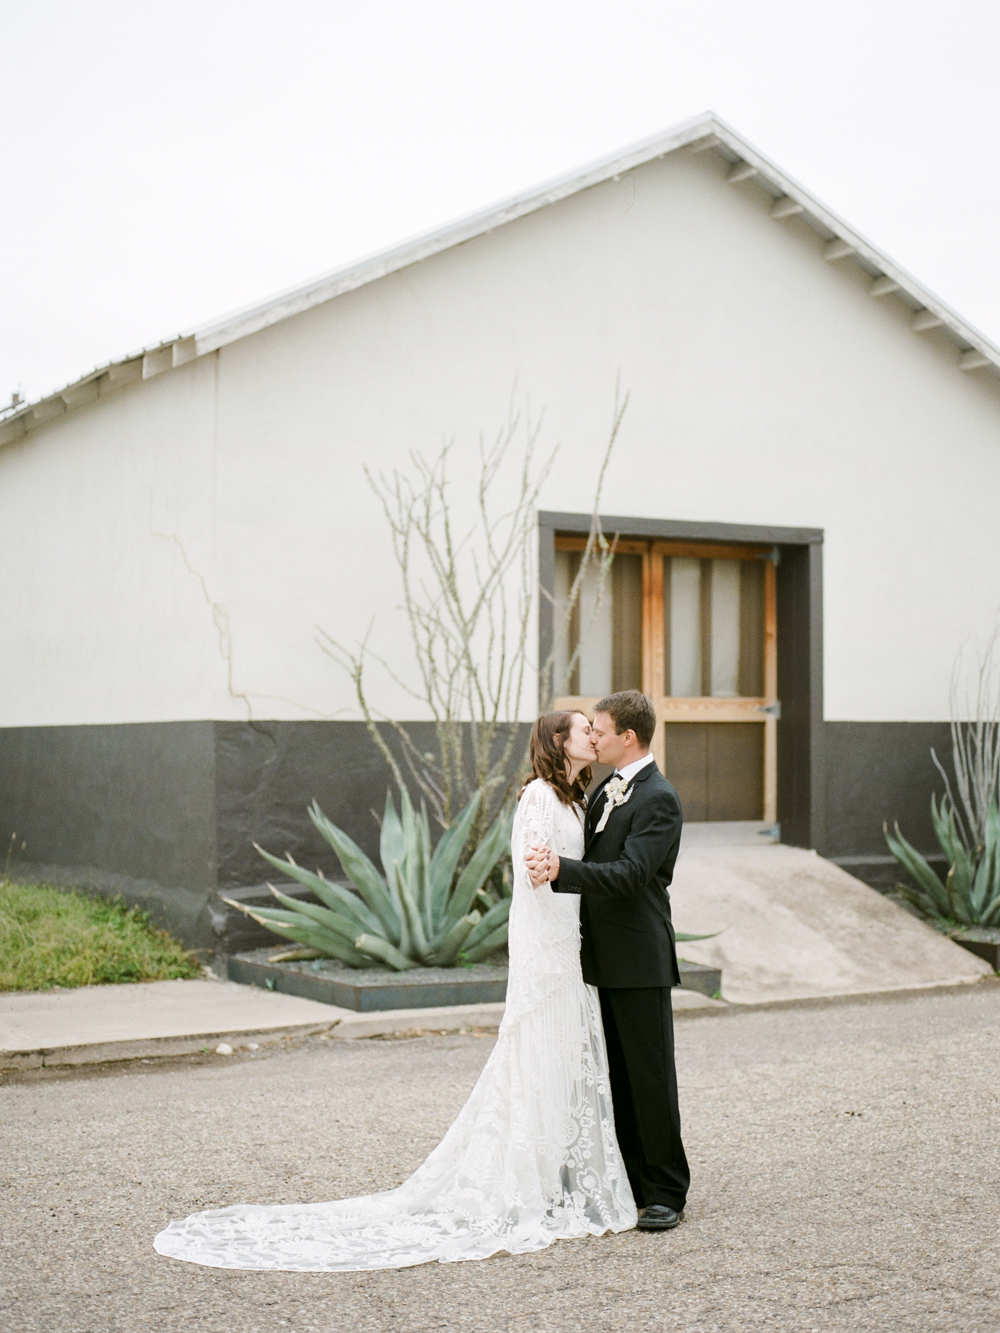 Marfa wedding photographer- destination wedding photographer-christine gosch - film photographer - elopement photographer-14.jpg